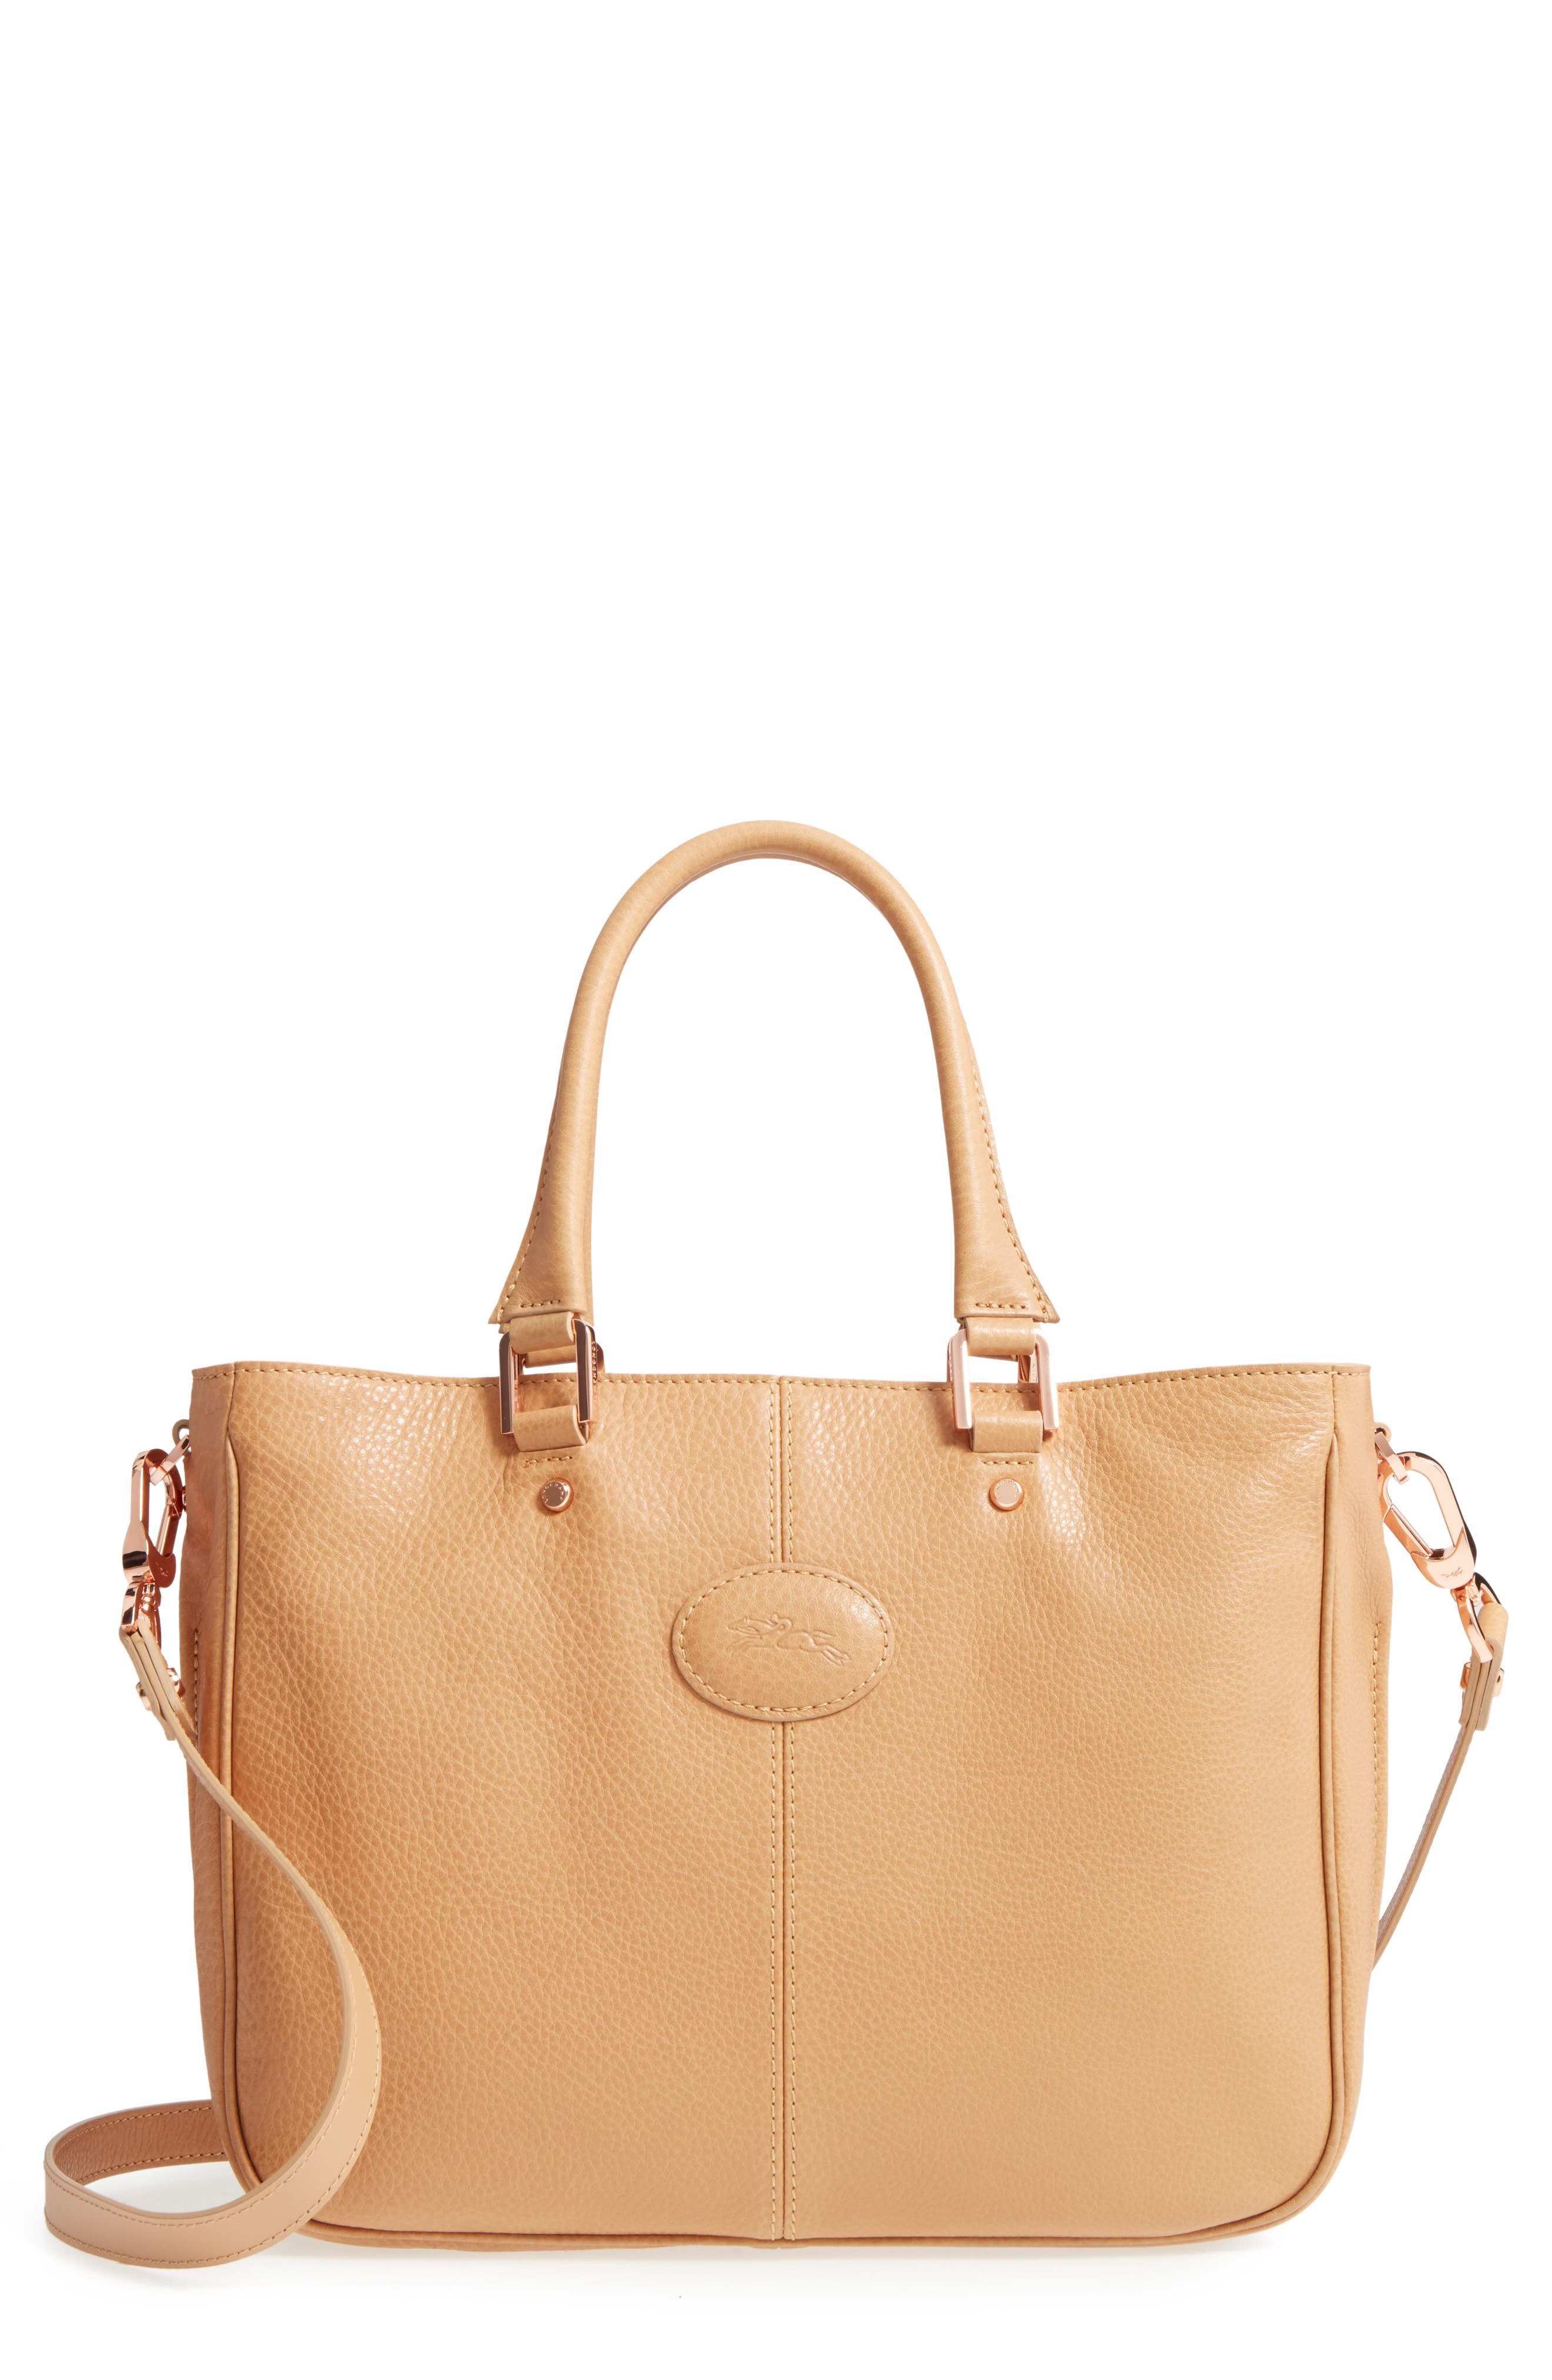 Mystery Leather Satchel,                             Main thumbnail 1, color,